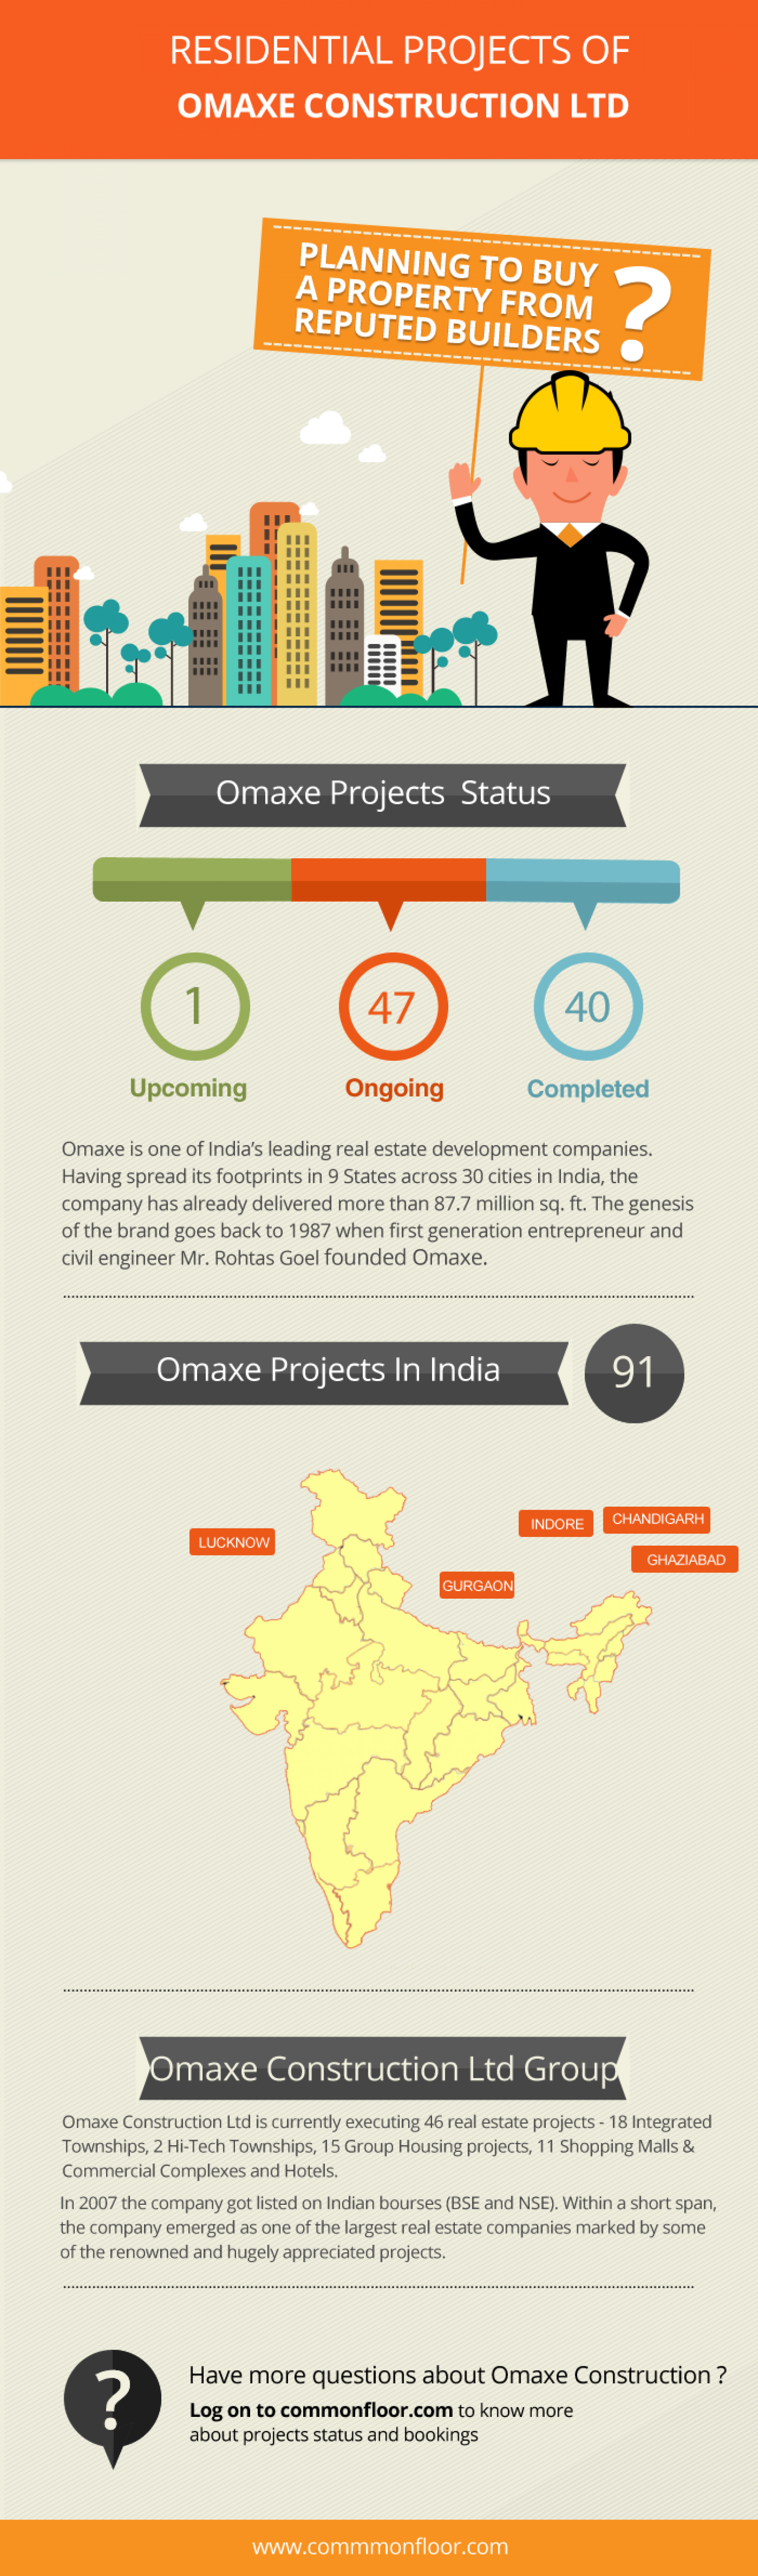 Residential Projects of Omaxe Construction LTD Infographic